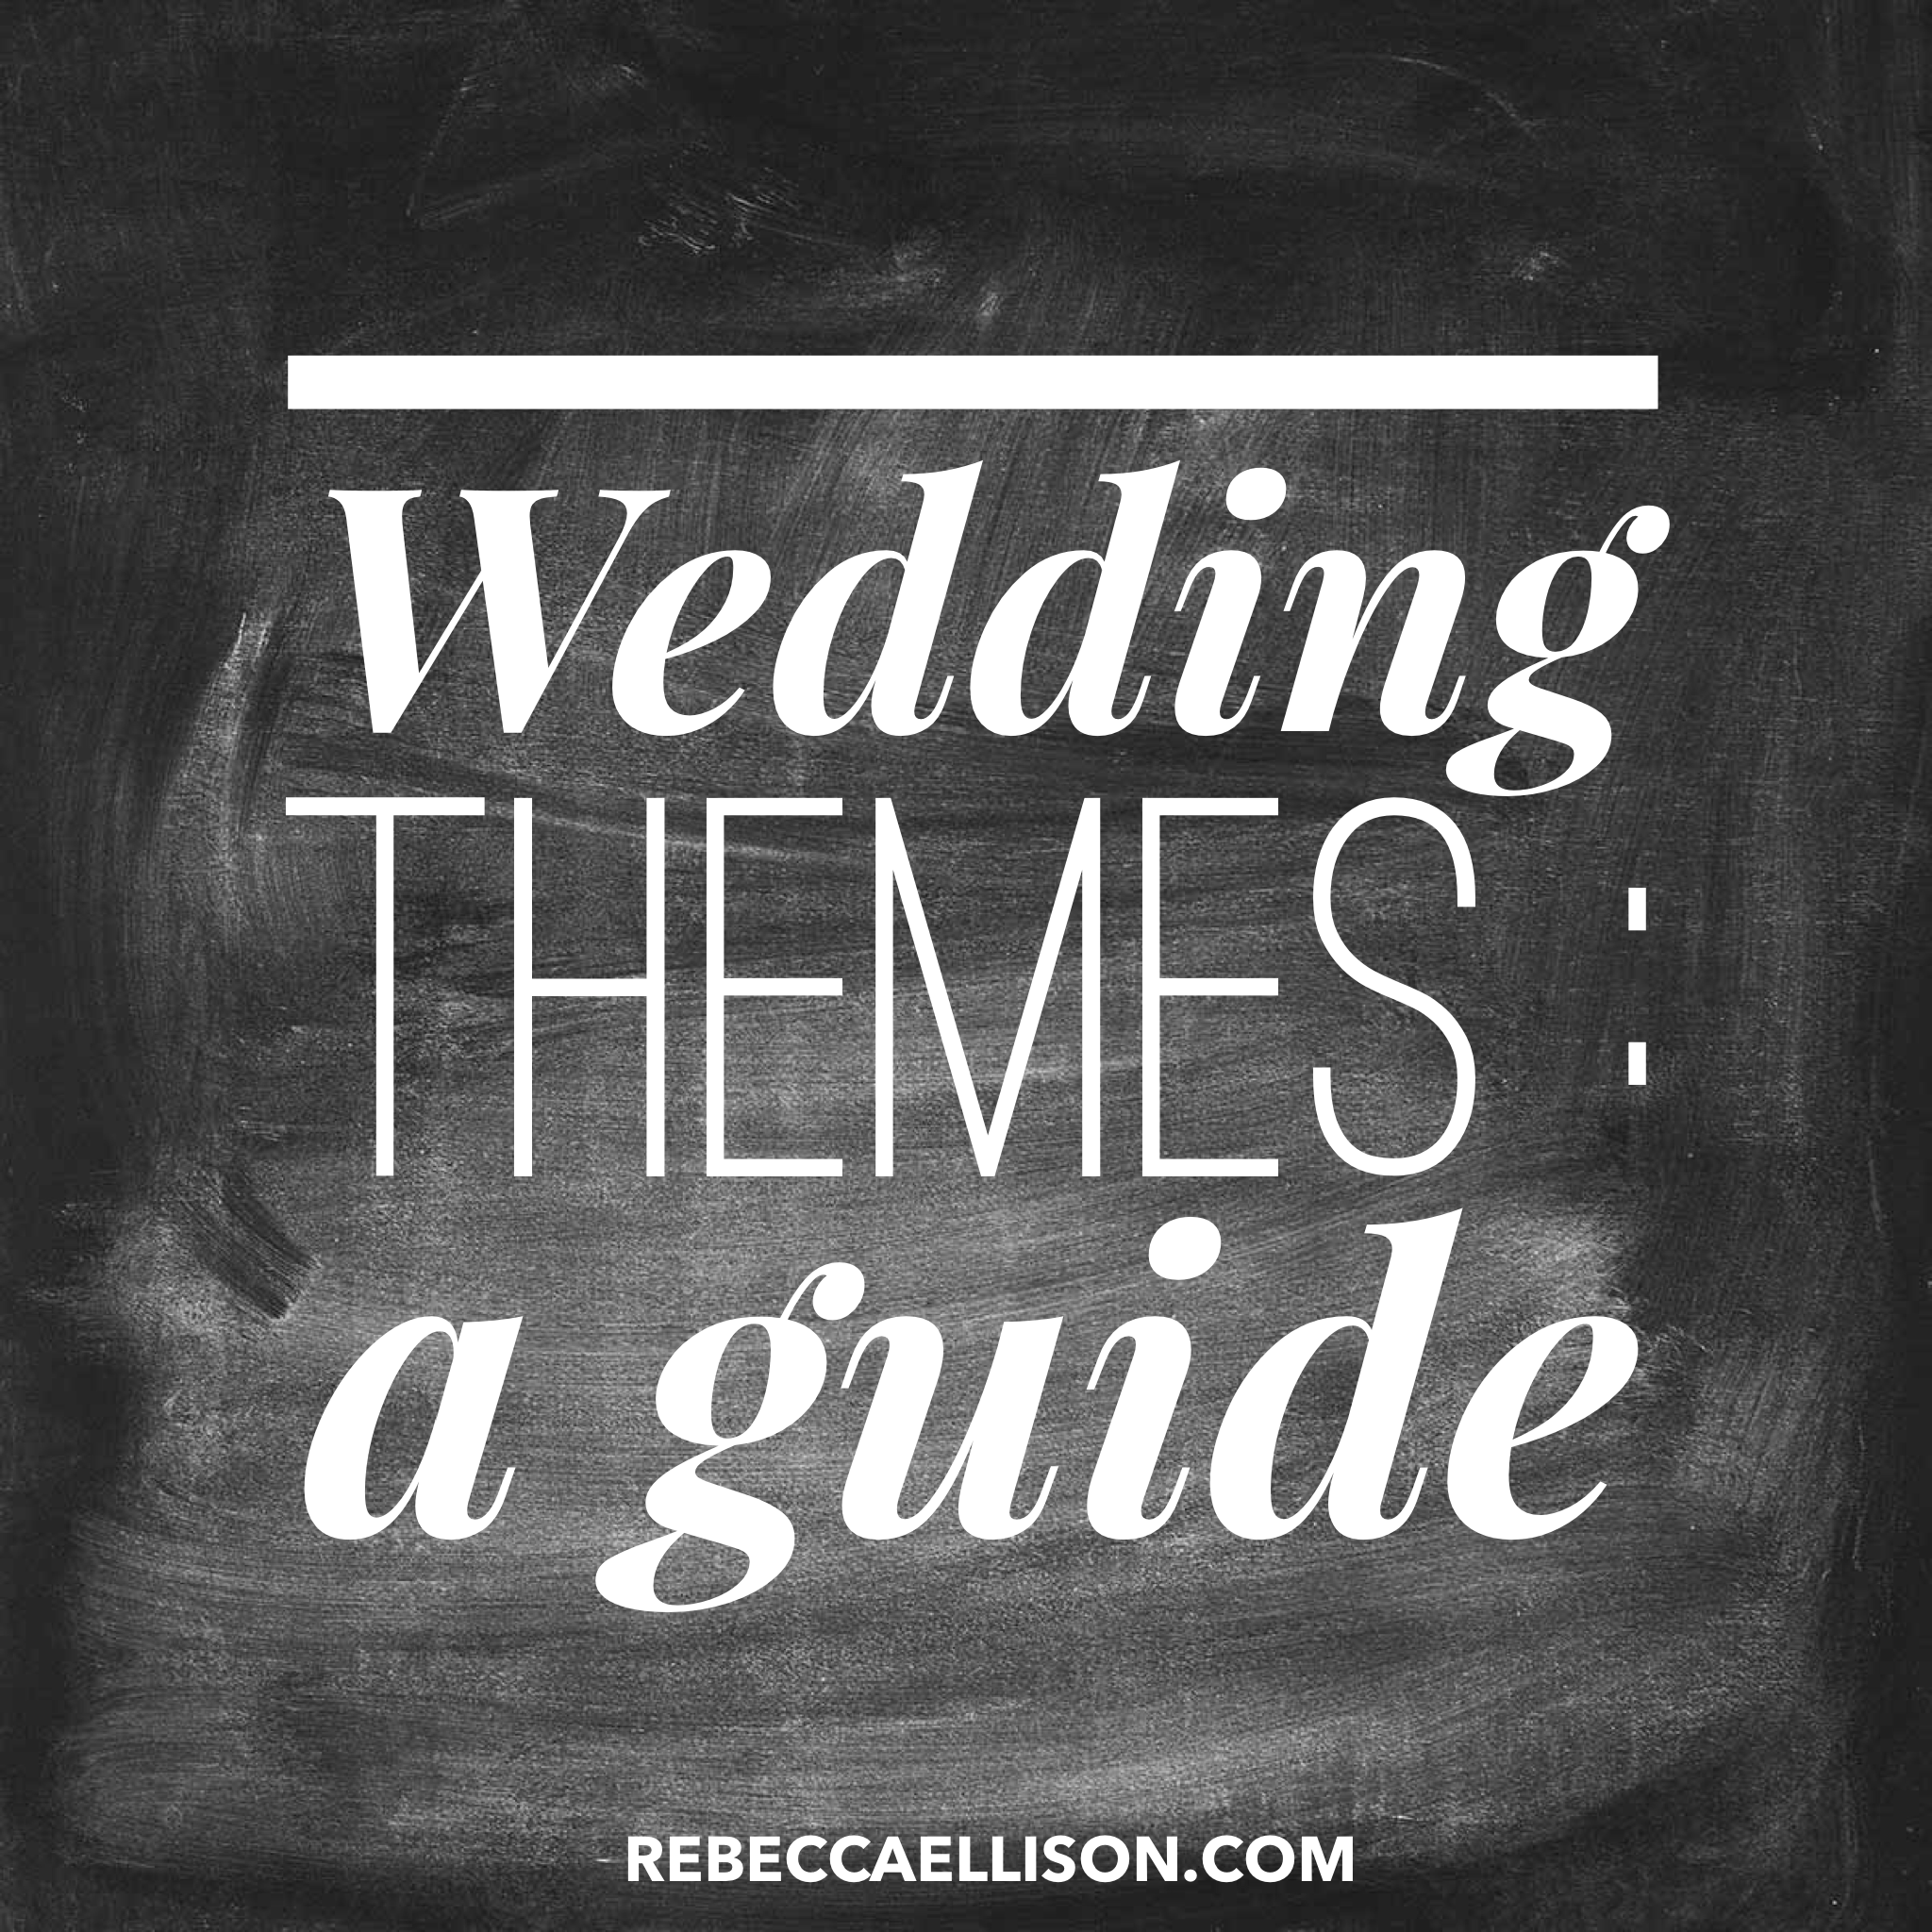 Wedding themes : a guide